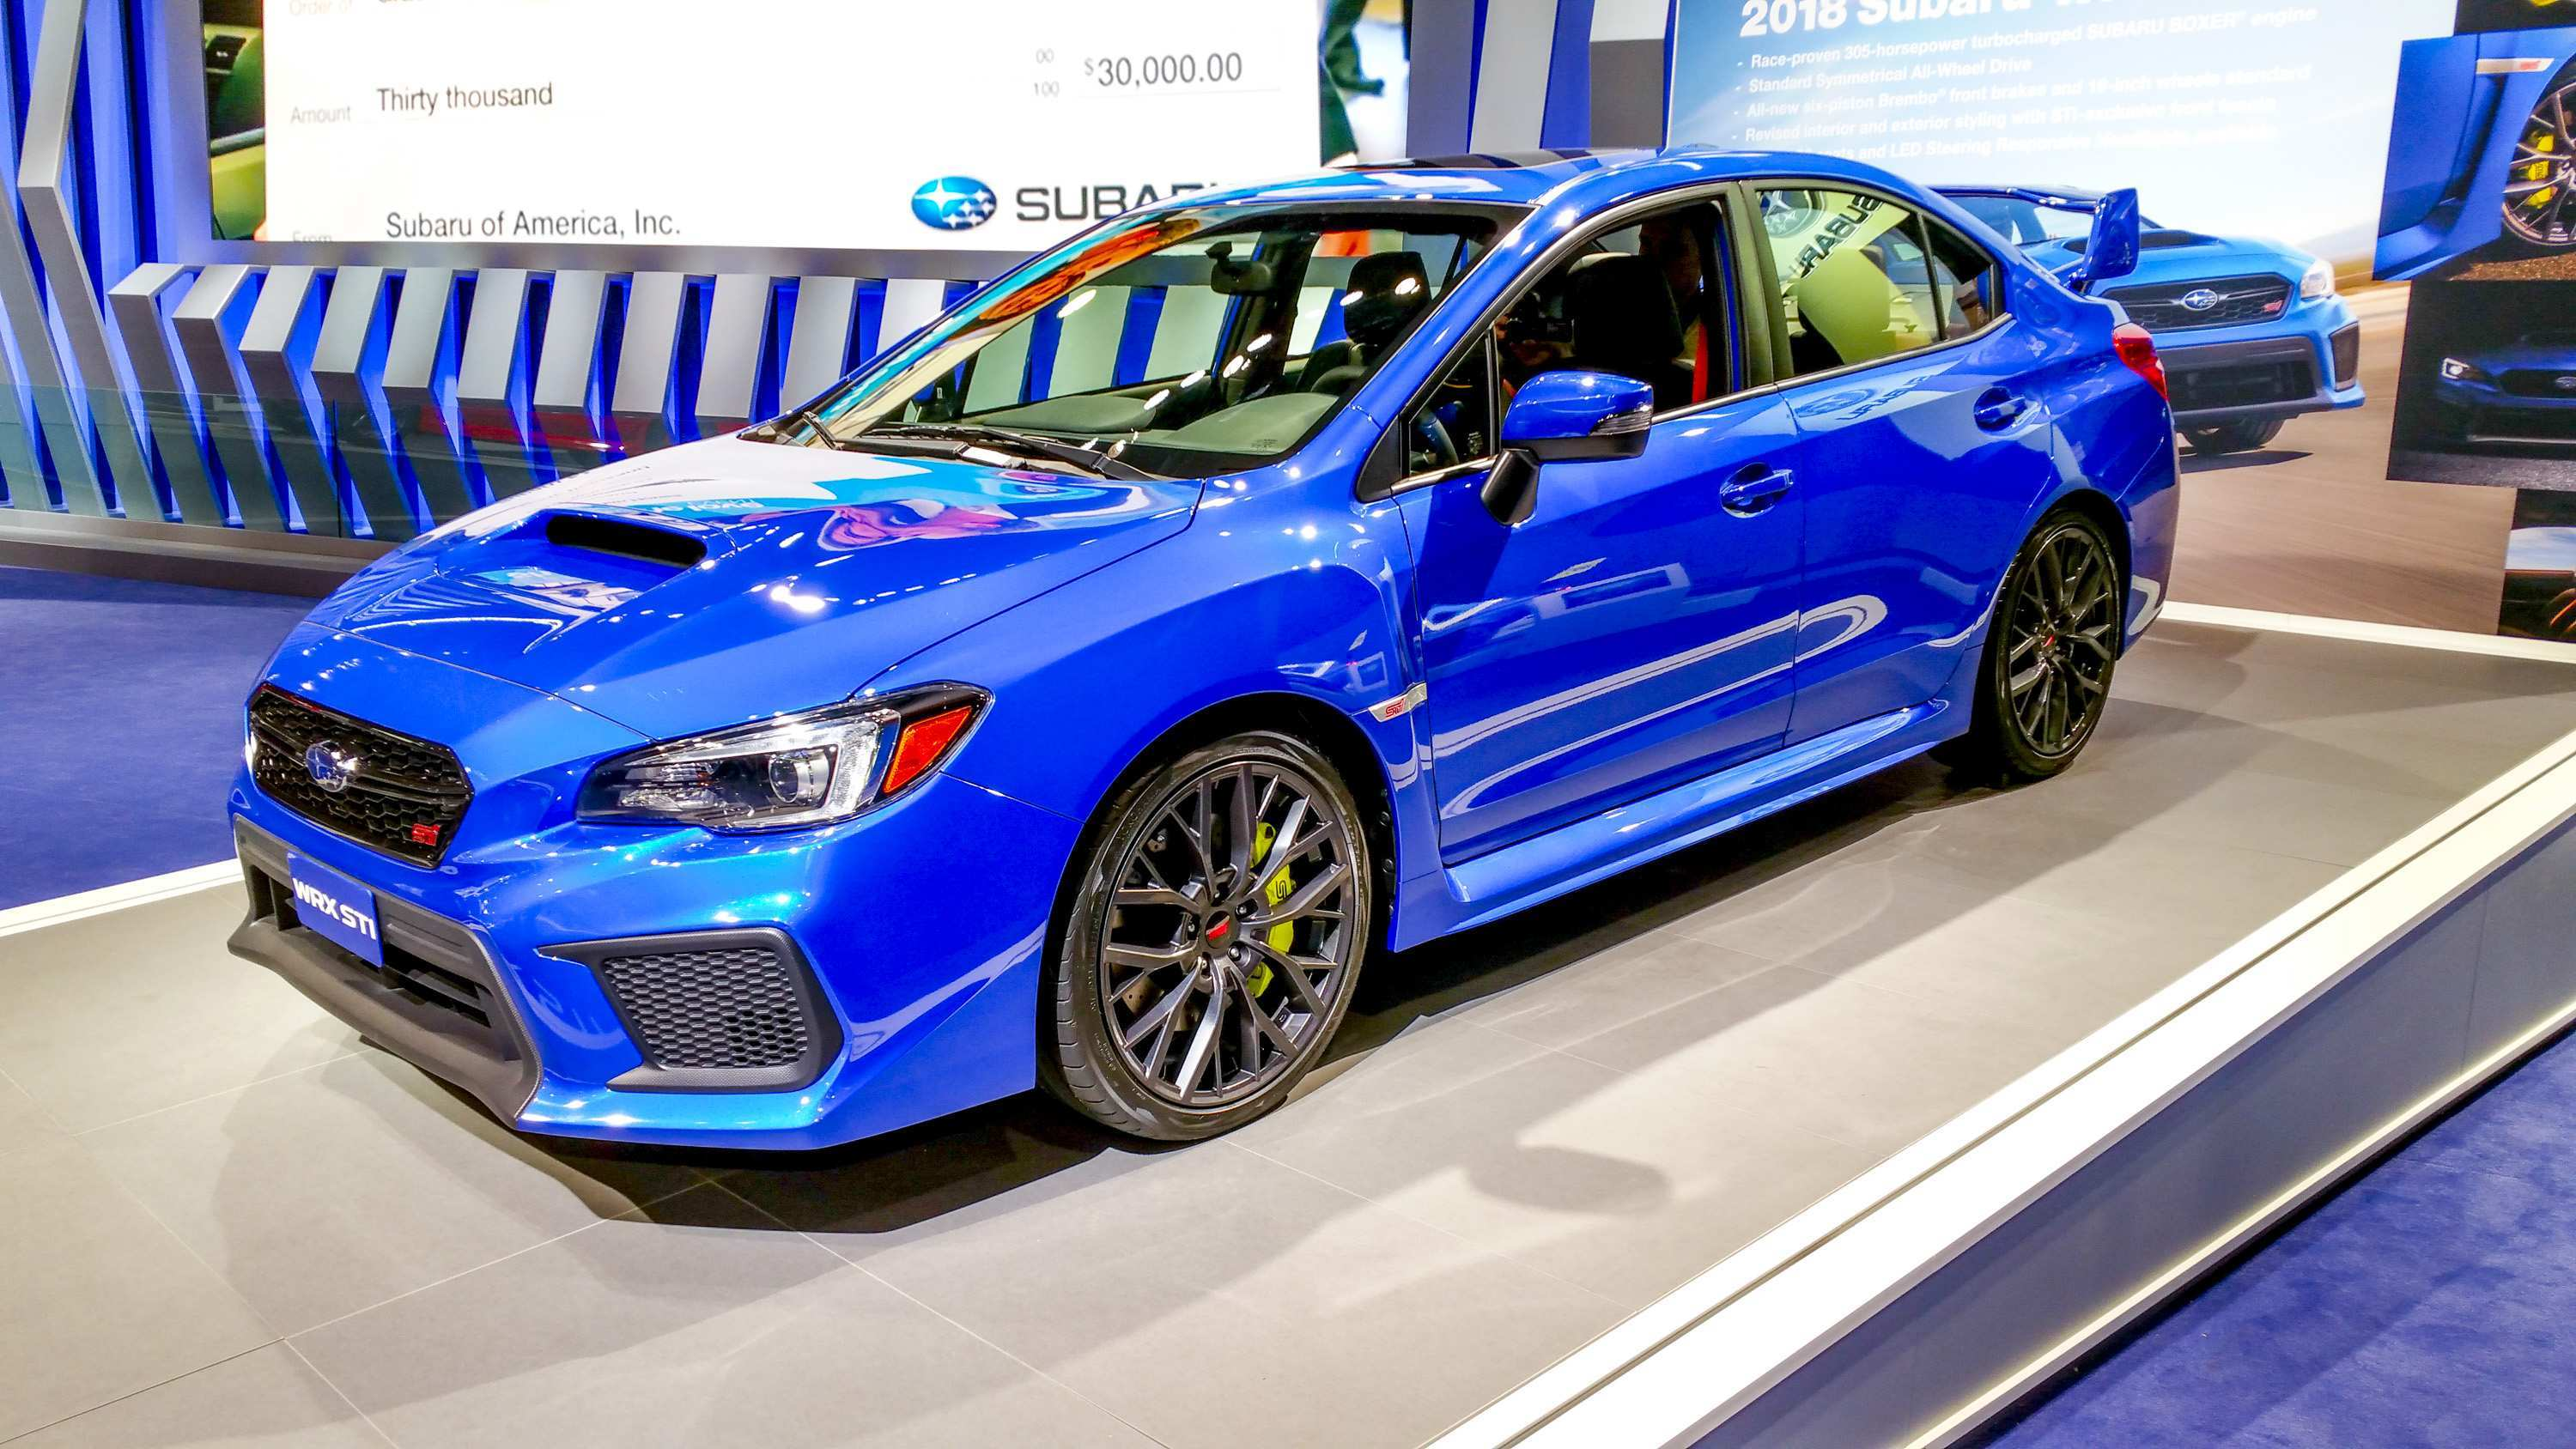 55 The Subaru Wrx 2020 Exterior First Drive with Subaru Wrx 2020 Exterior